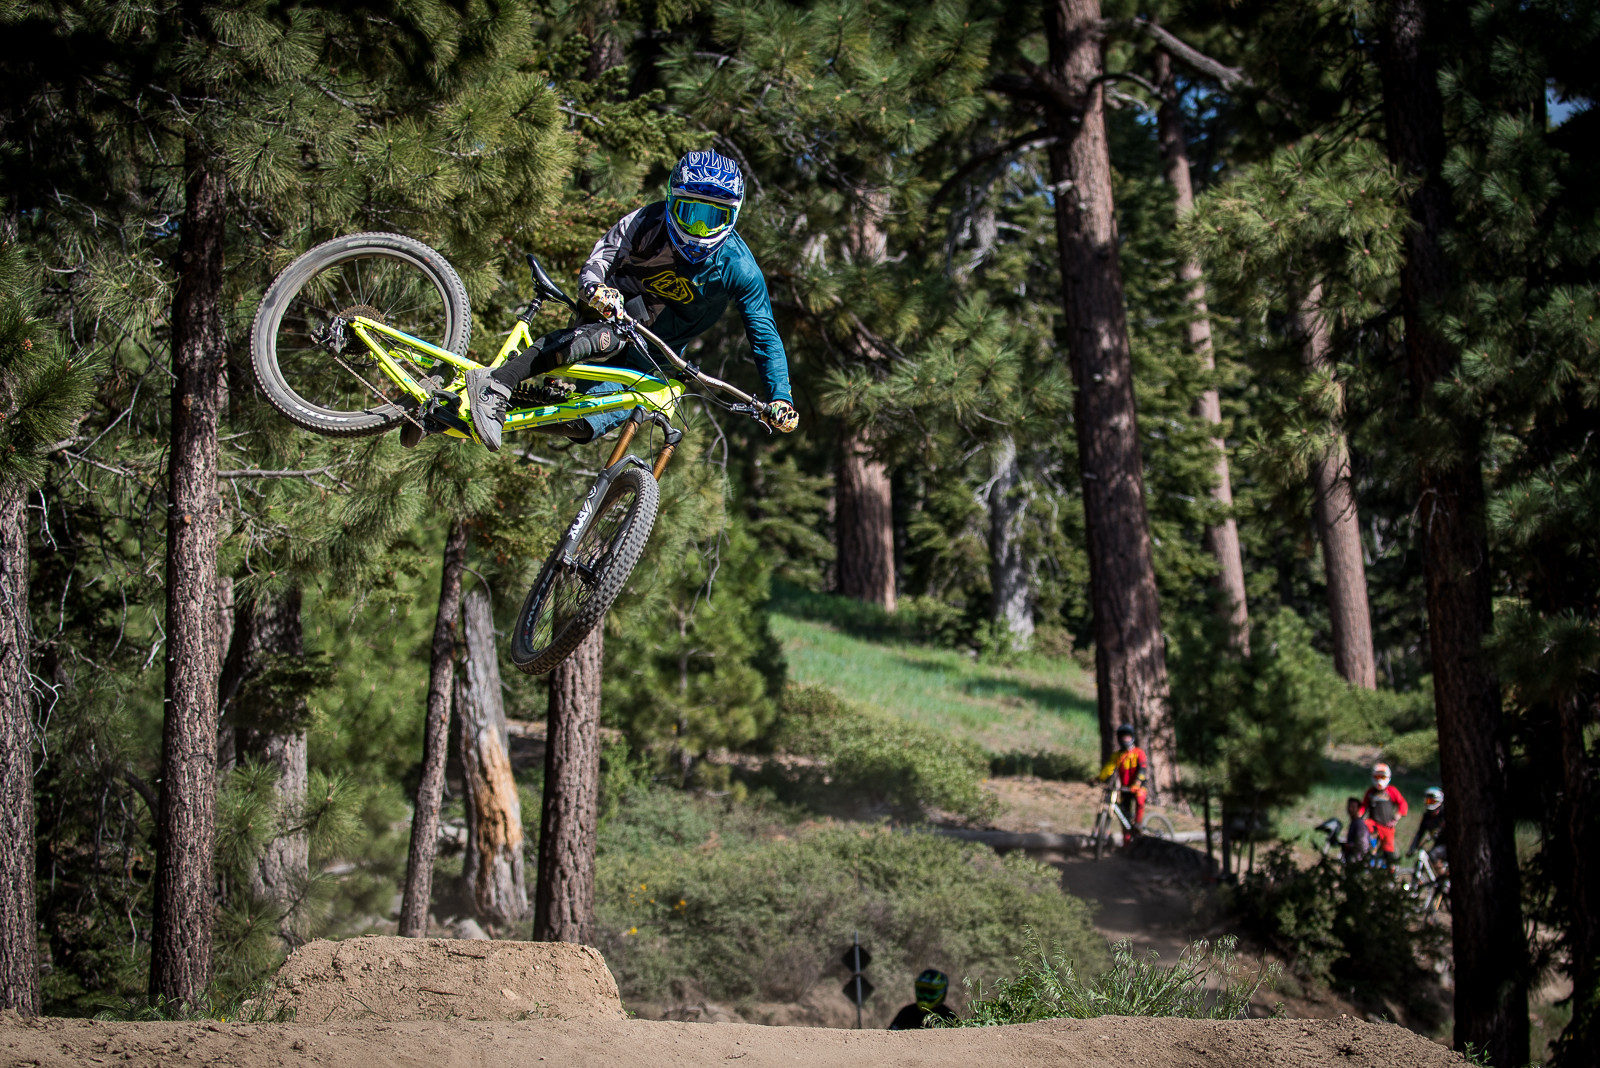 Chappy Fiene - Vital Ditch Day 2016 at Snow Summit Bike Park - Mountain Biking Pictures - Vital MTB